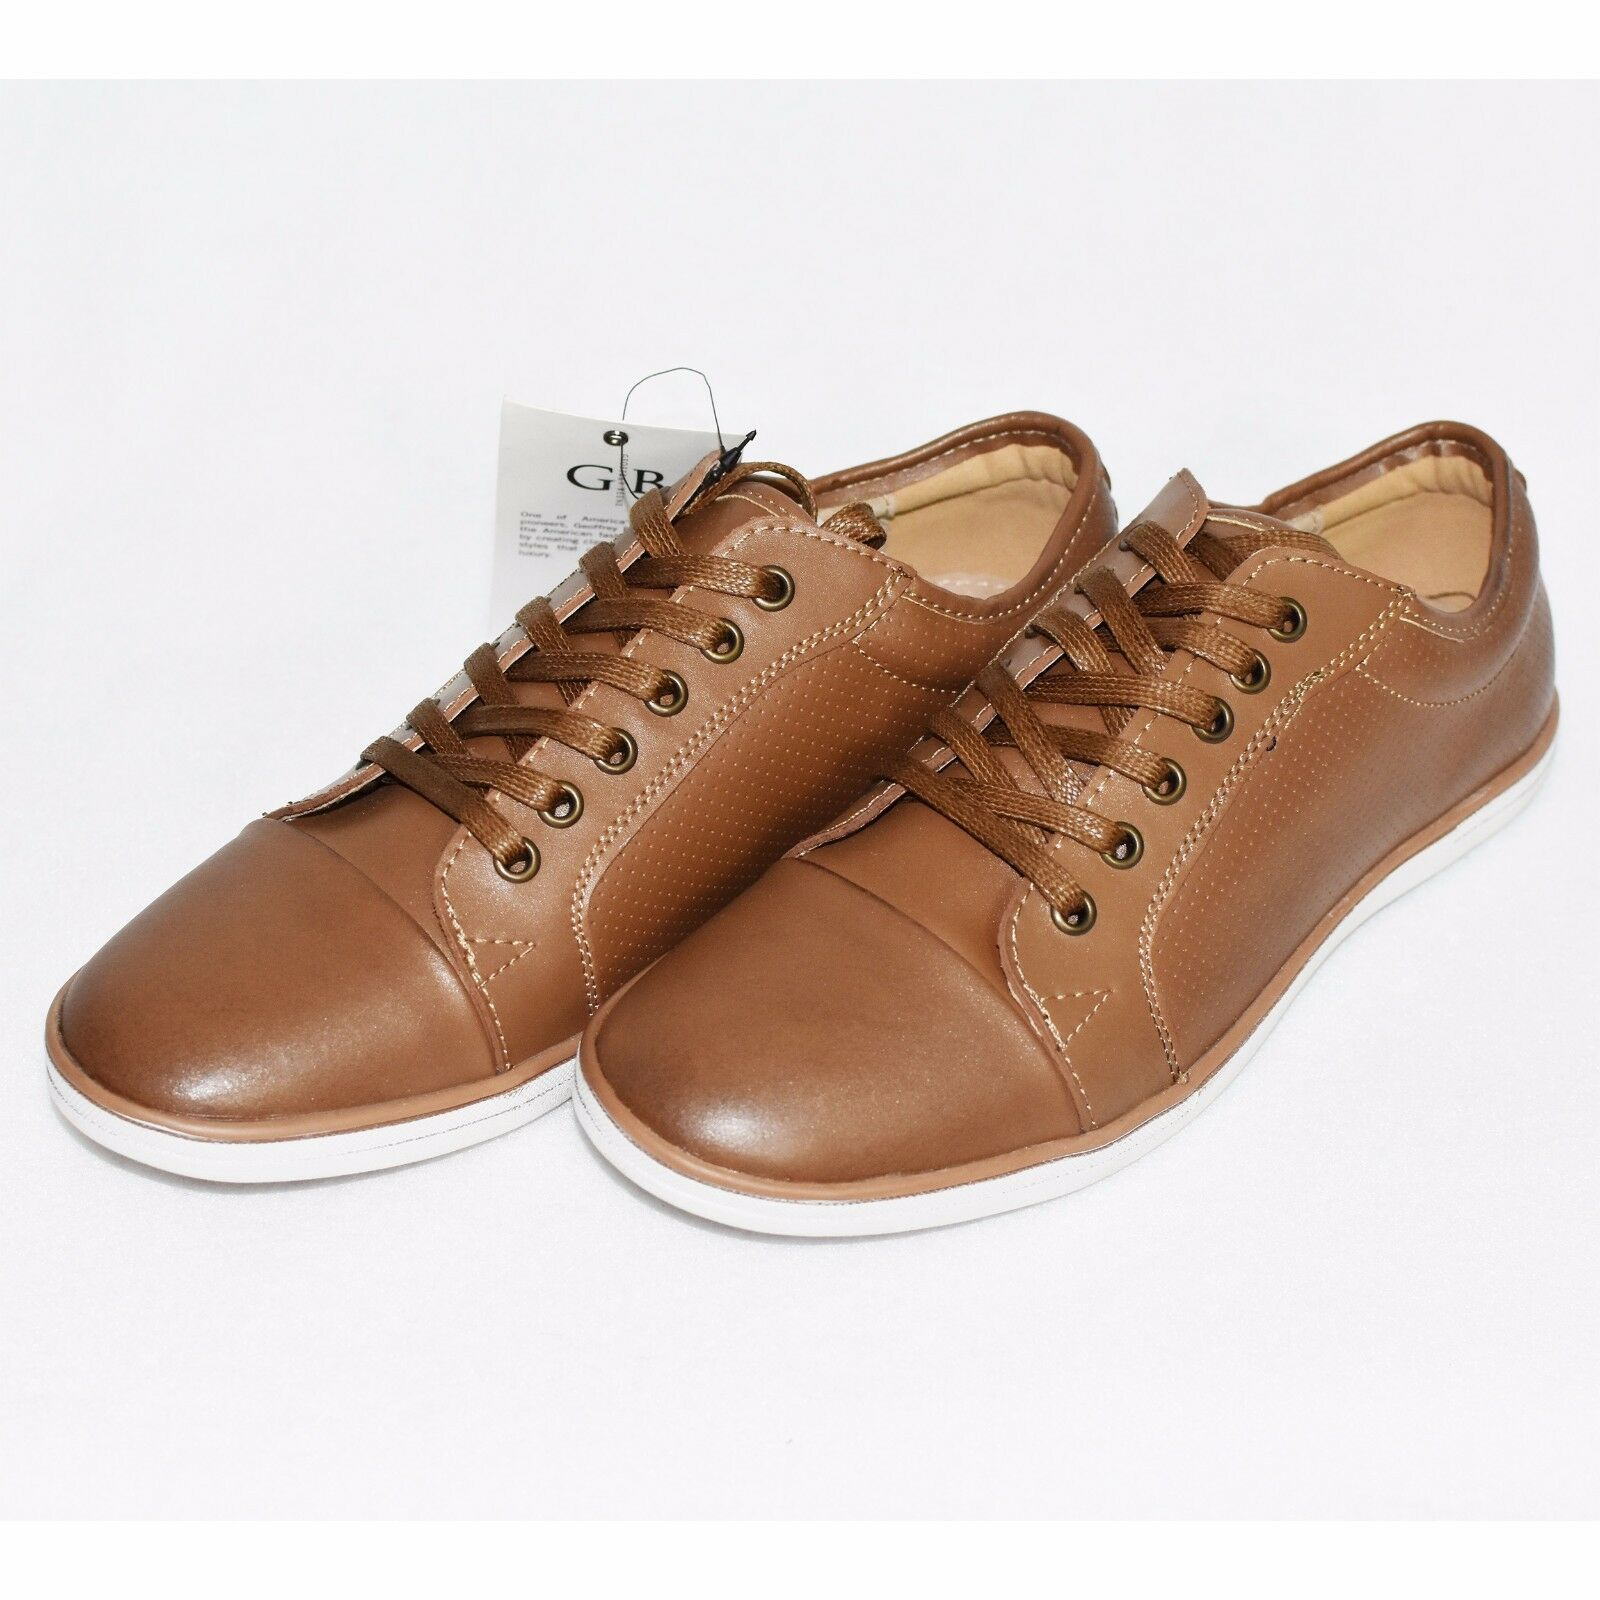 Geoffrey Beene Smart Williamsburg Brown Leather Sneaker Smart Beene Casual Size 8 AU c3d23d